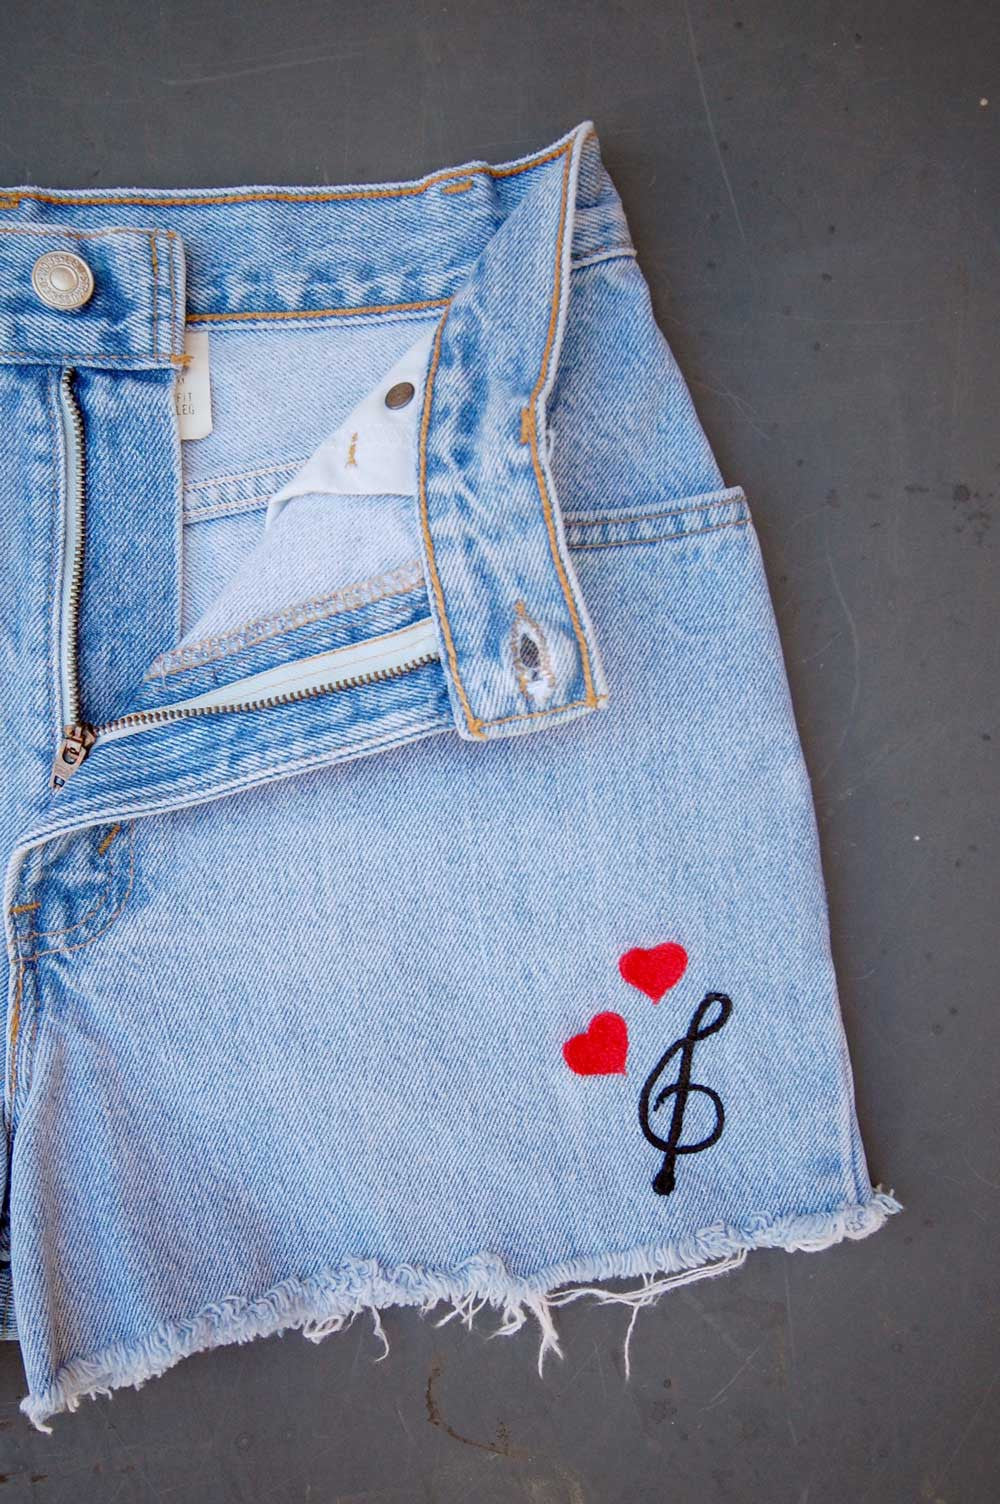 bd22b2b1 Vintage Levi's 505 USA Chain-Stitched Hearts & Music Note Cutoff Denim  Shorts